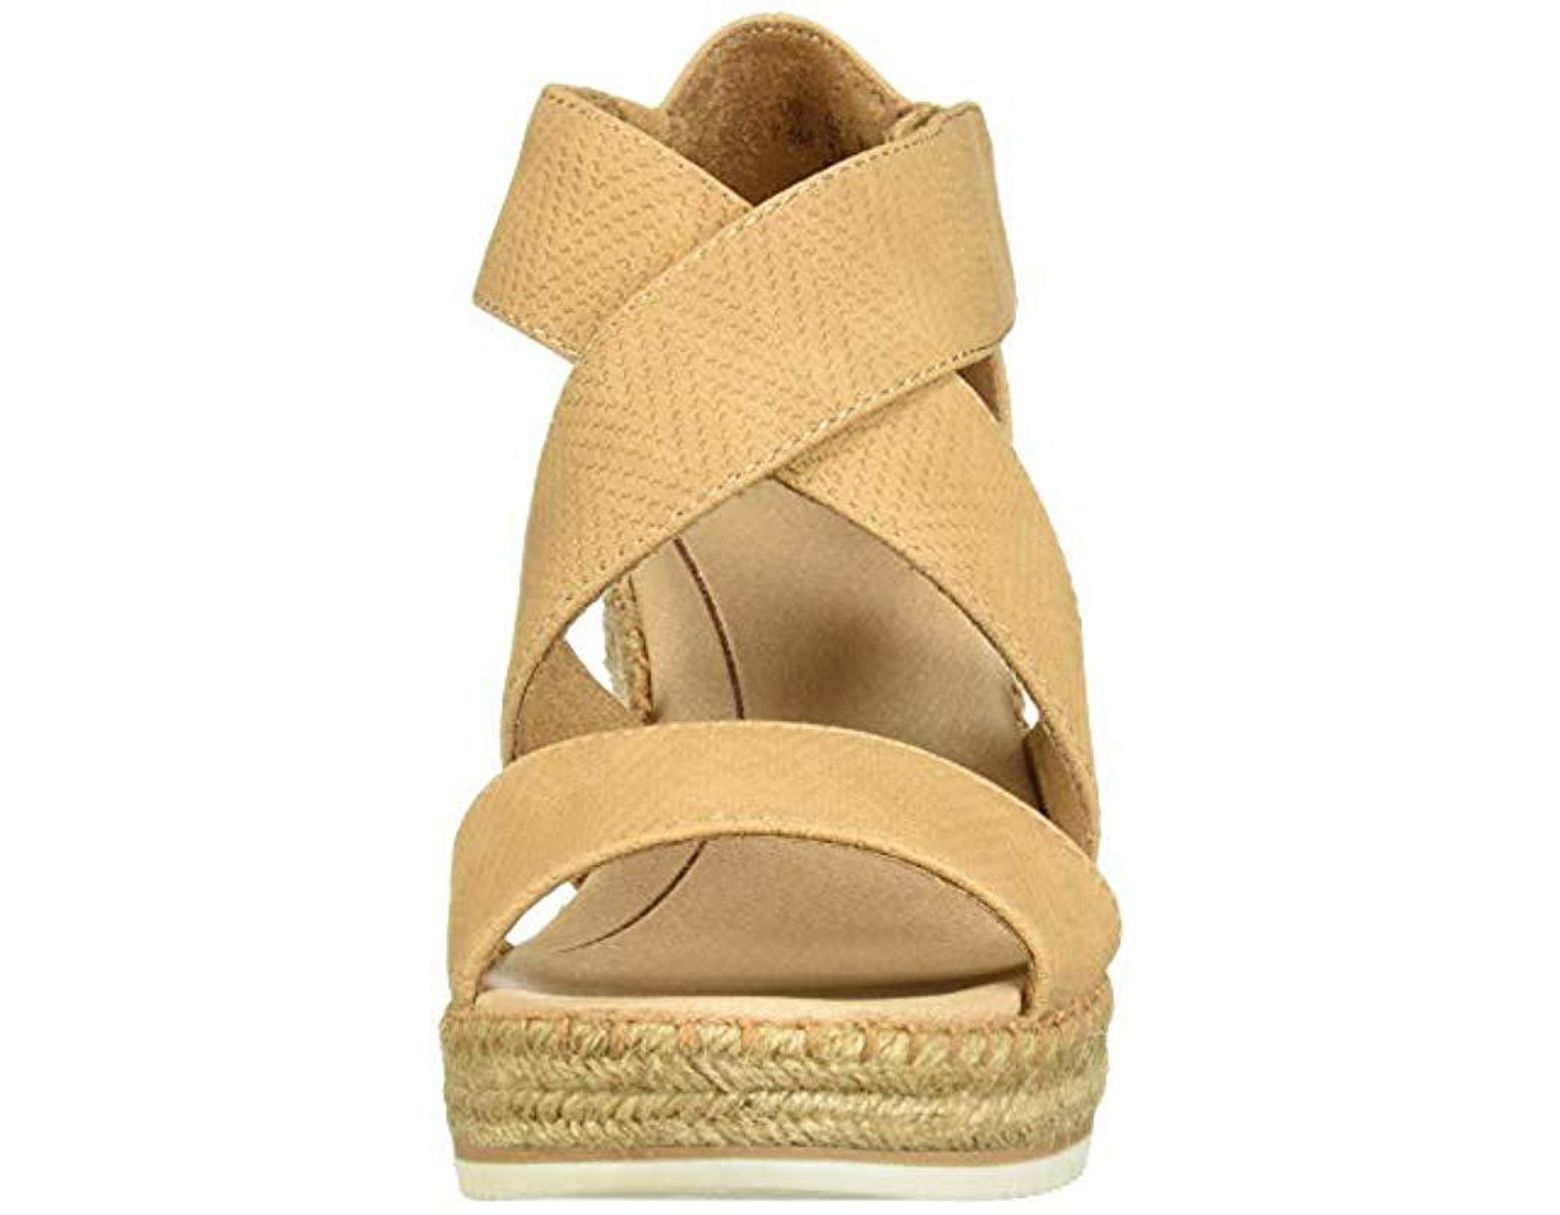 64dee4d87d Dr. Scholls Vacay Espadrille Wedge Sandal in Natural - Lyst